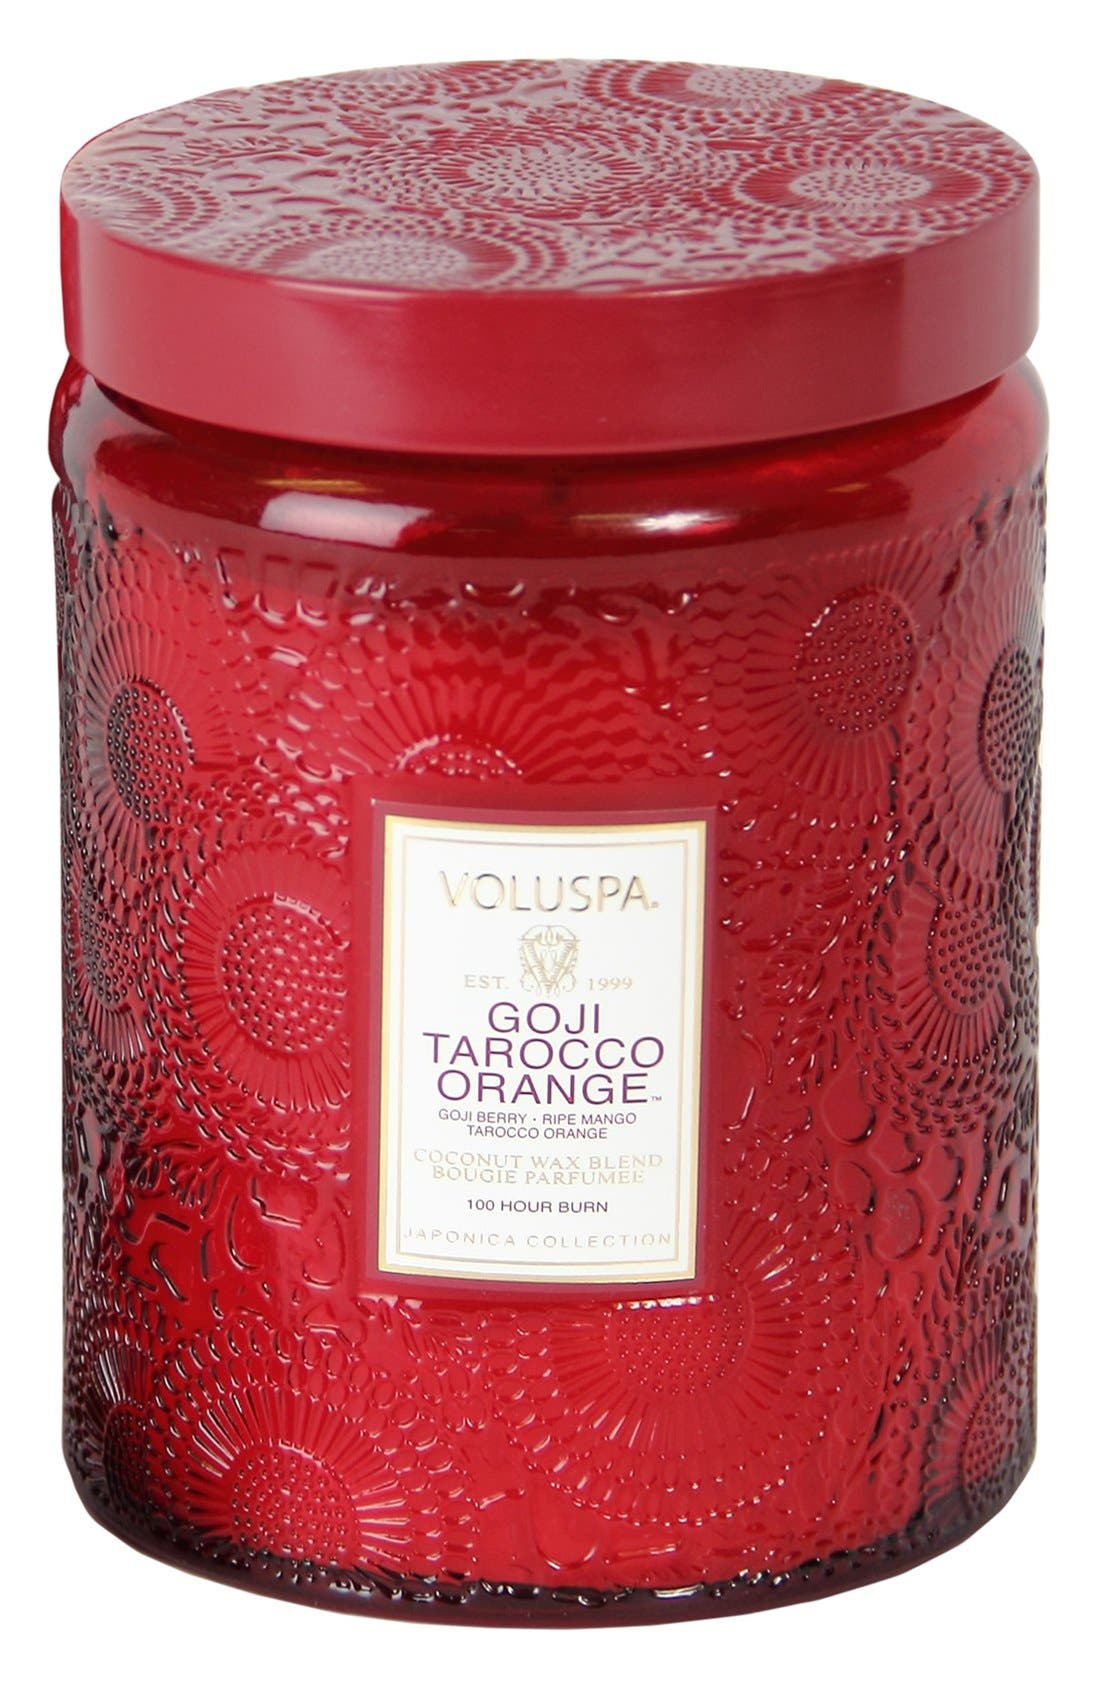 Alternate Image 1 Selected - Voluspa 'Japonica - Goji Tarocco Orange' Large Embossed Jar Candle